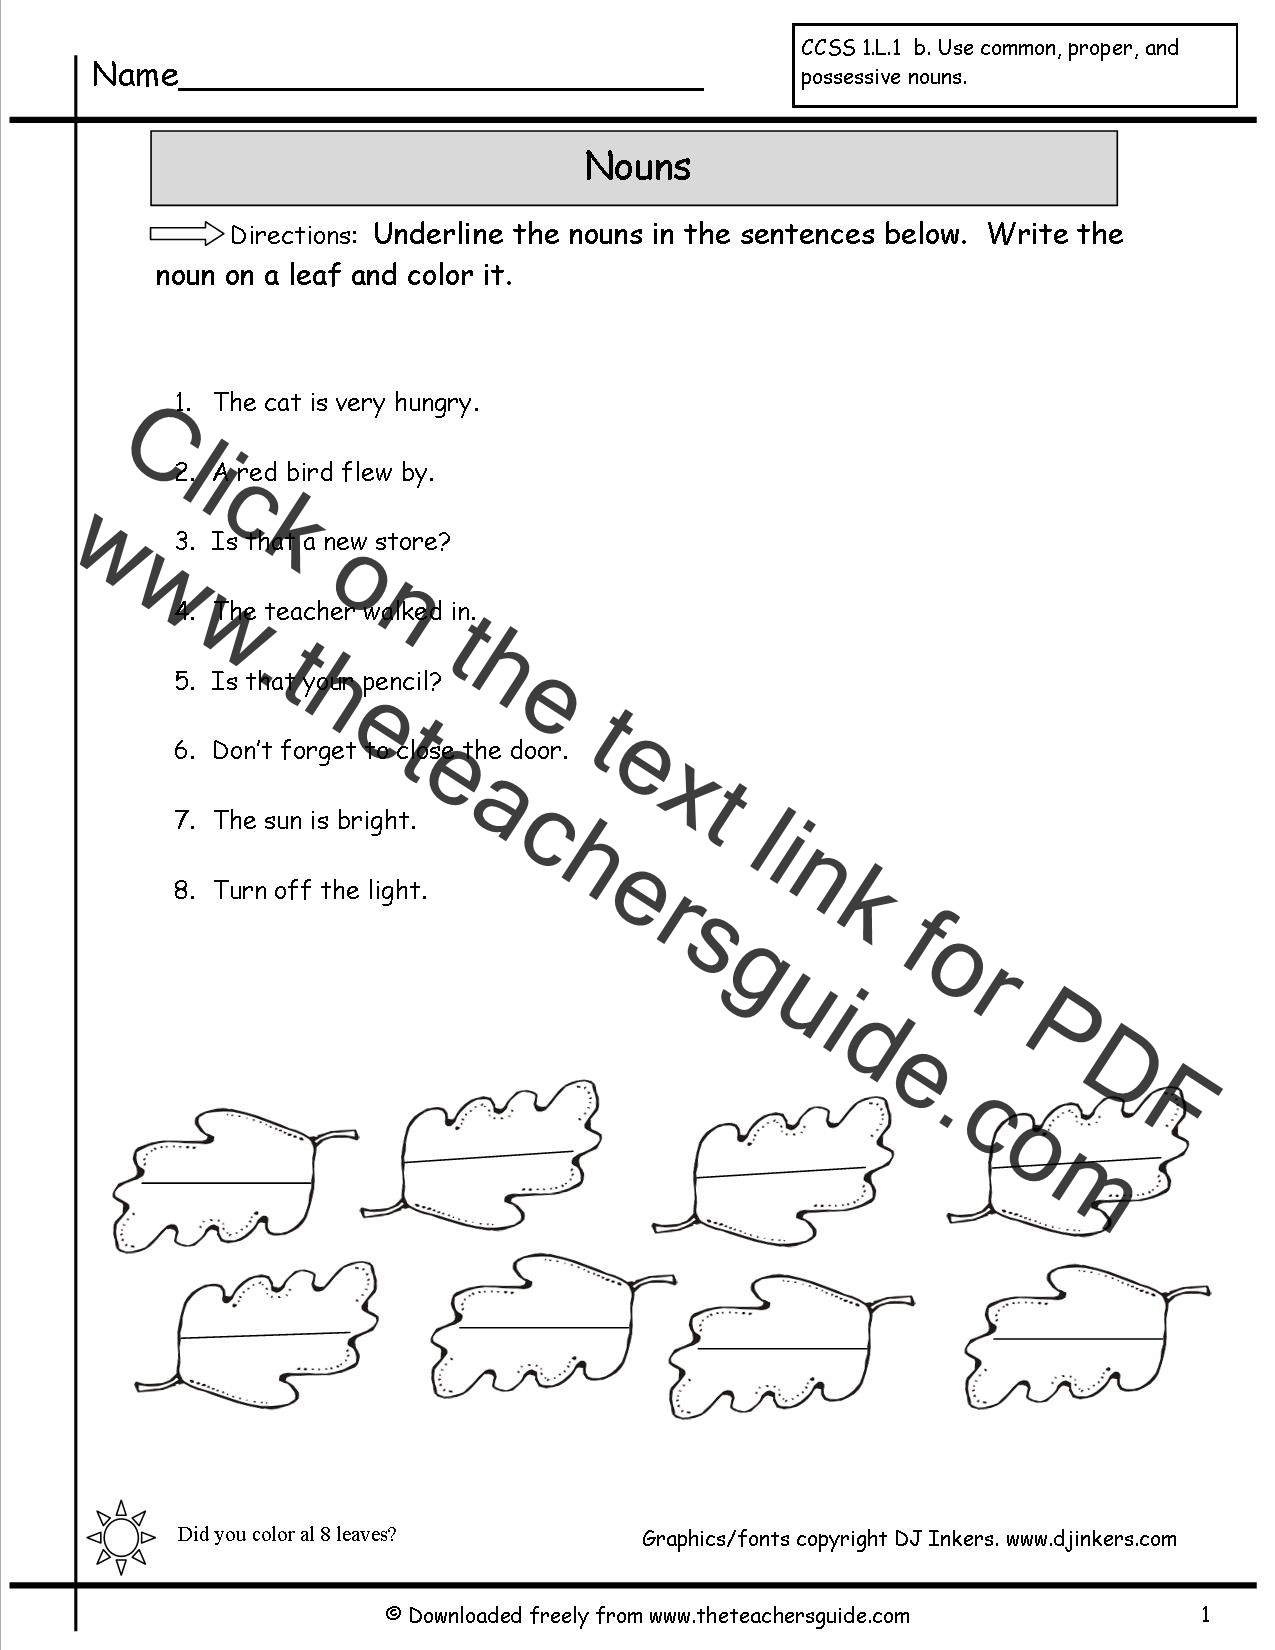 Possessive Nouns Worksheets 2nd Grade Possessive Noun Worksheet